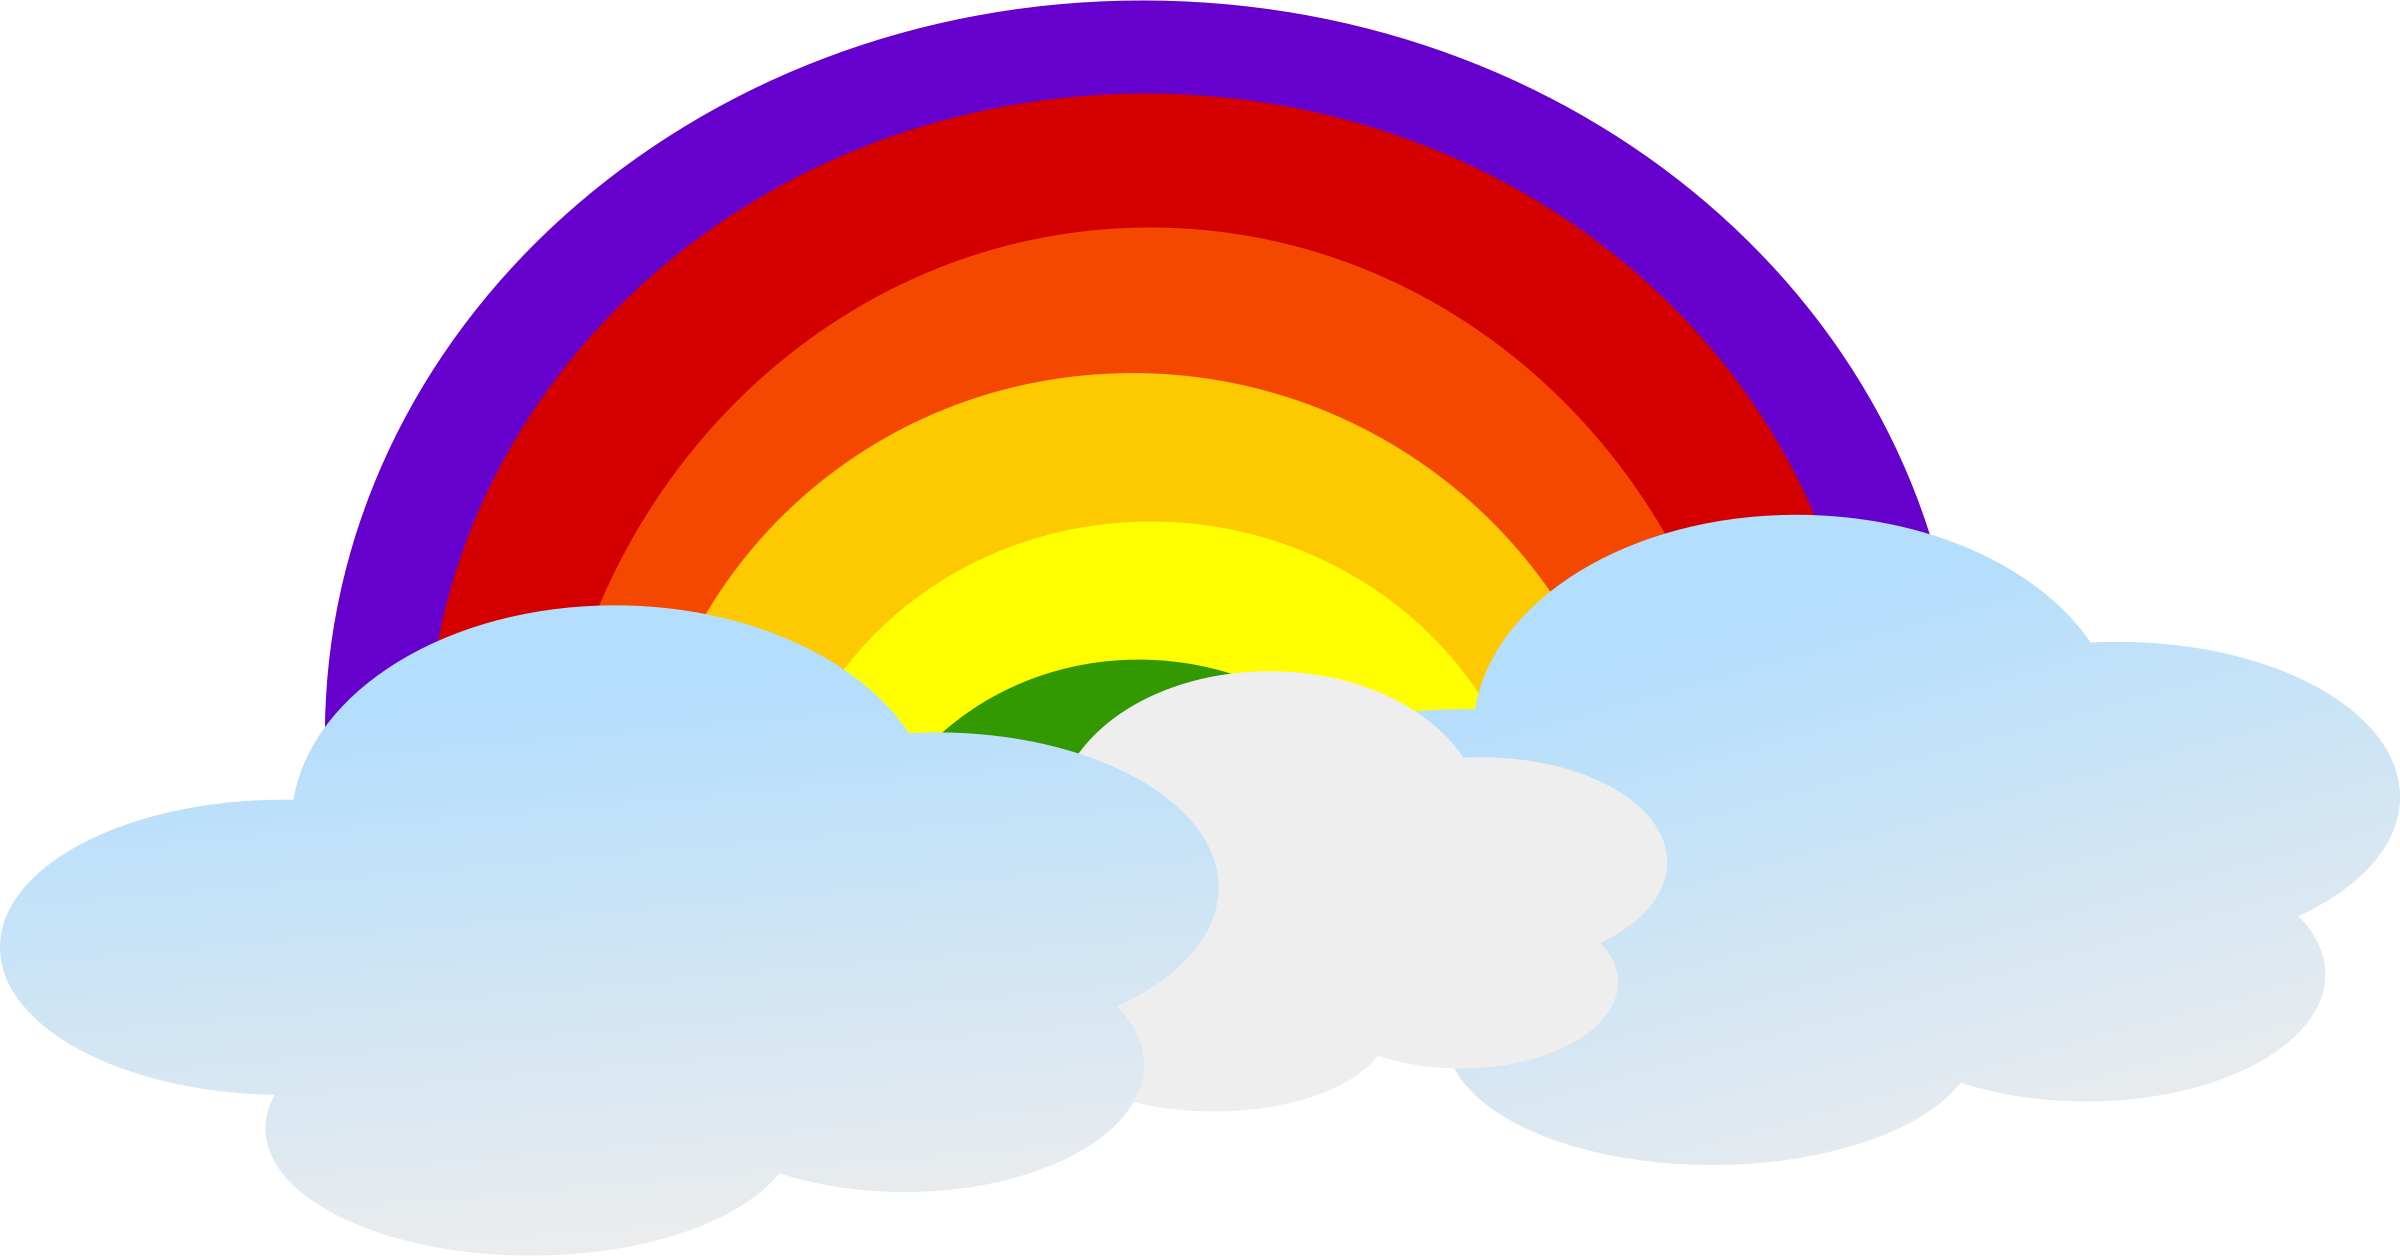 Vector clipart rainbow #9